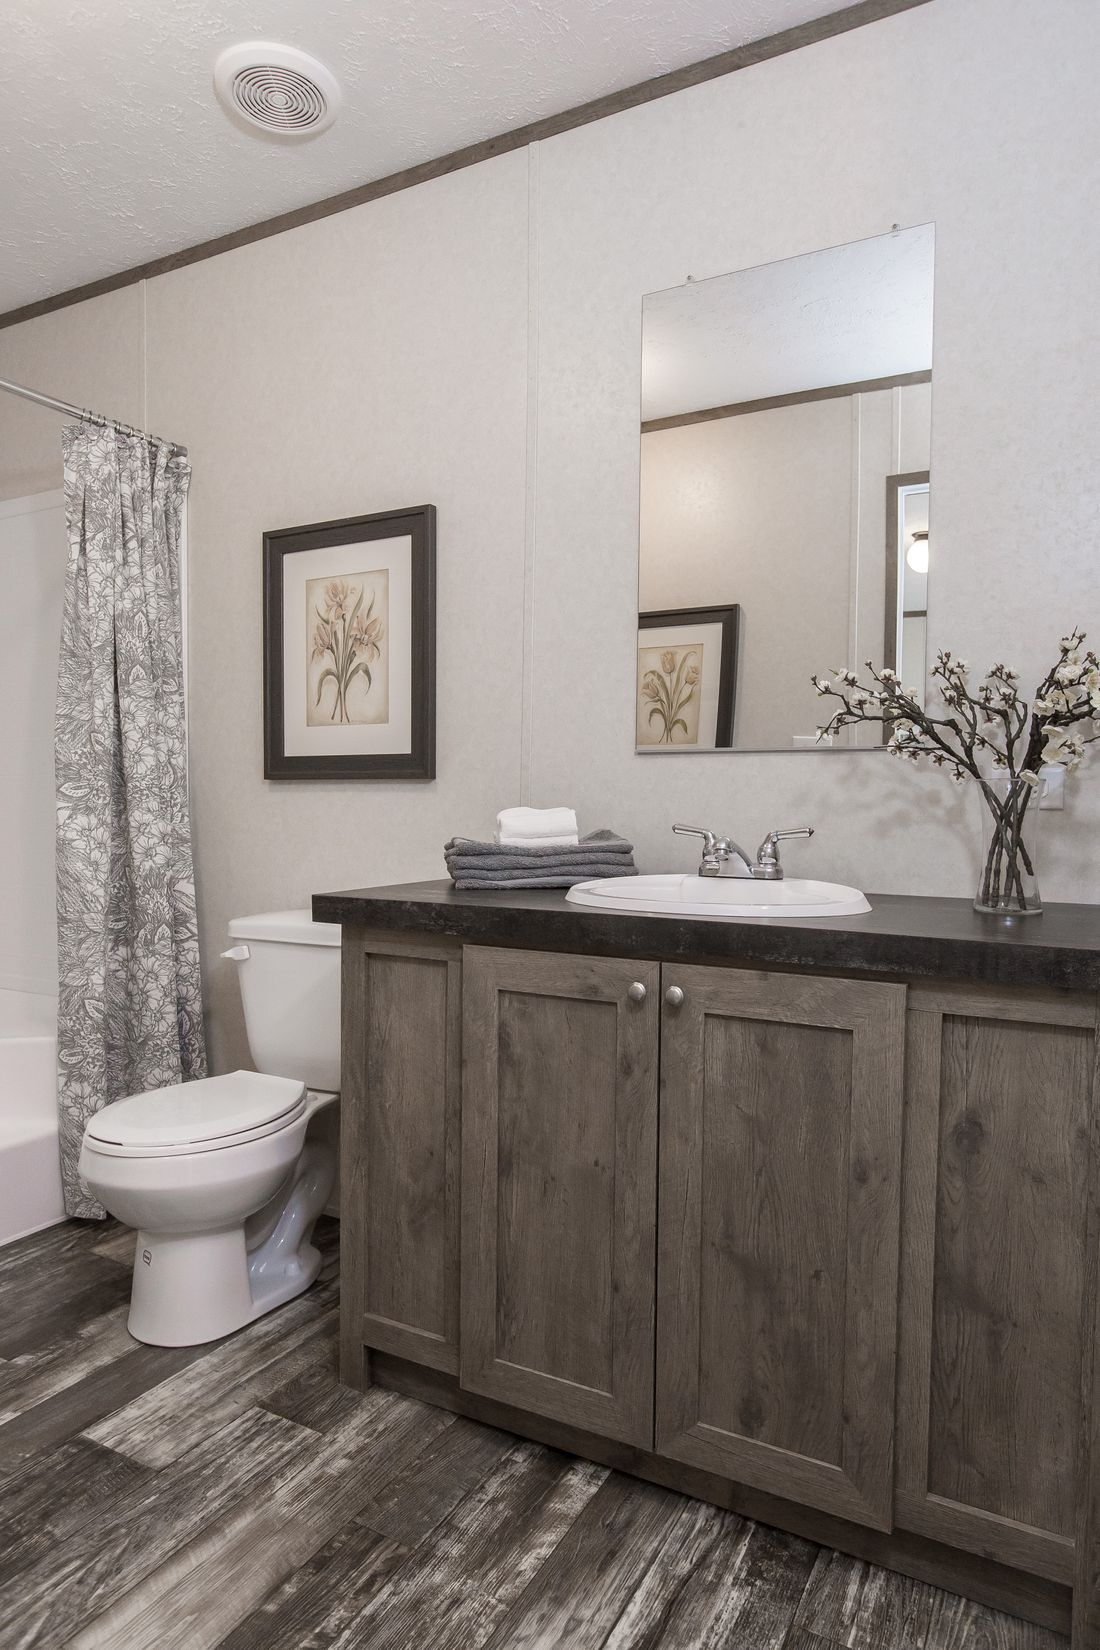 The THE NEW BREEZE I Master Bathroom. This Manufactured Mobile Home features 3 bedrooms and 2 baths.